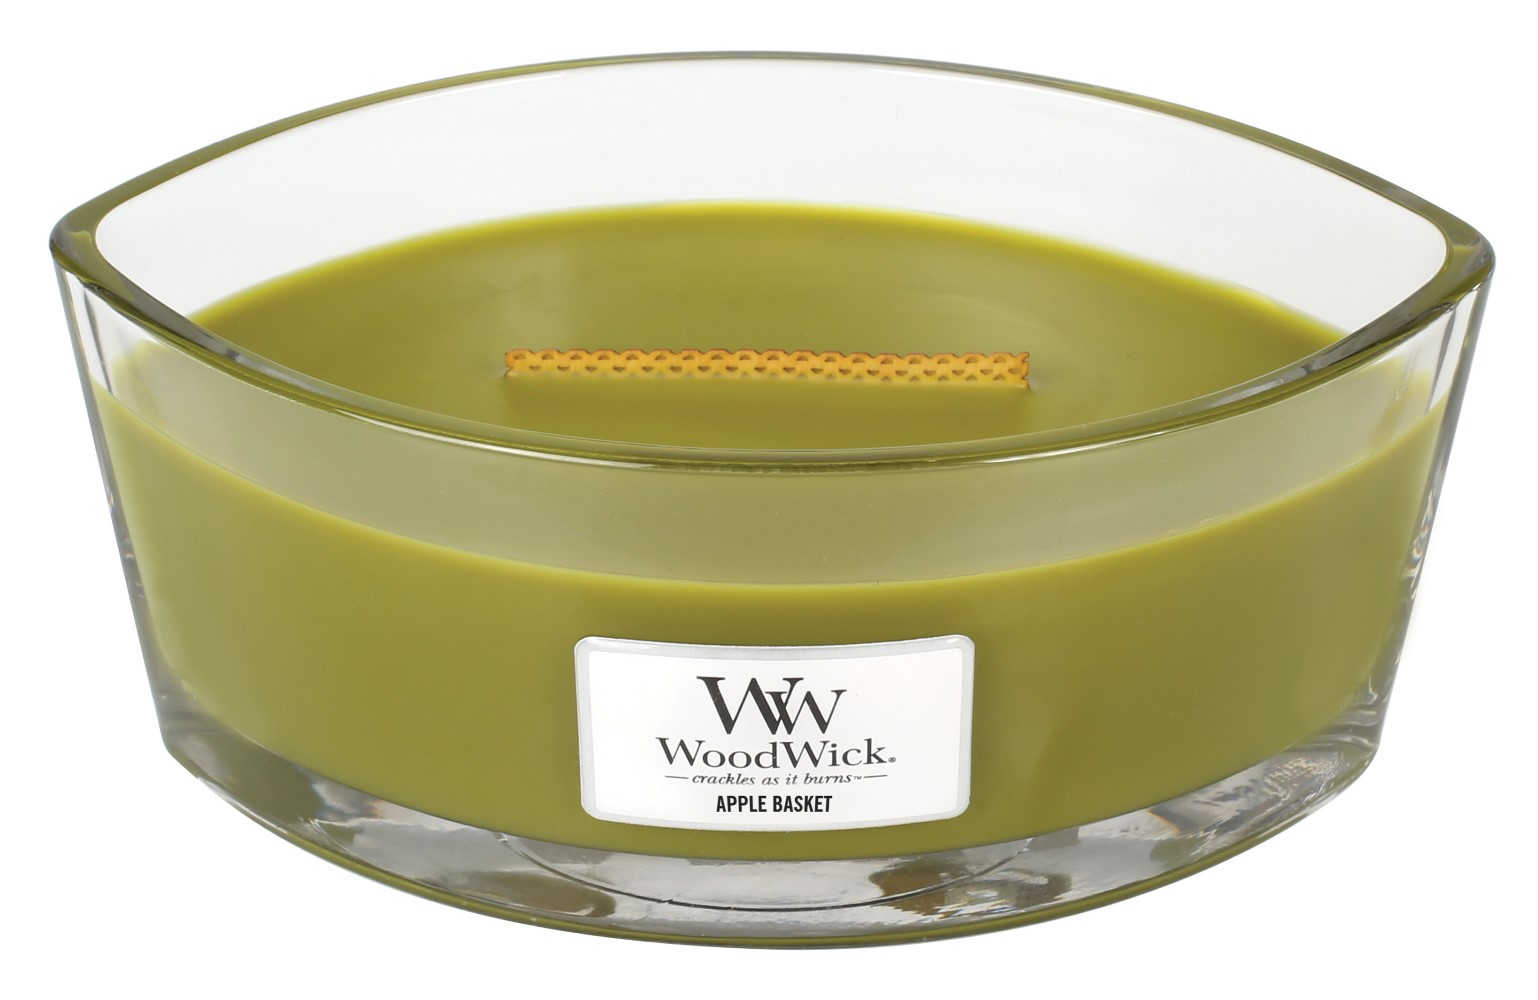 WoodWick lumanare parfumata Apple Basket barca